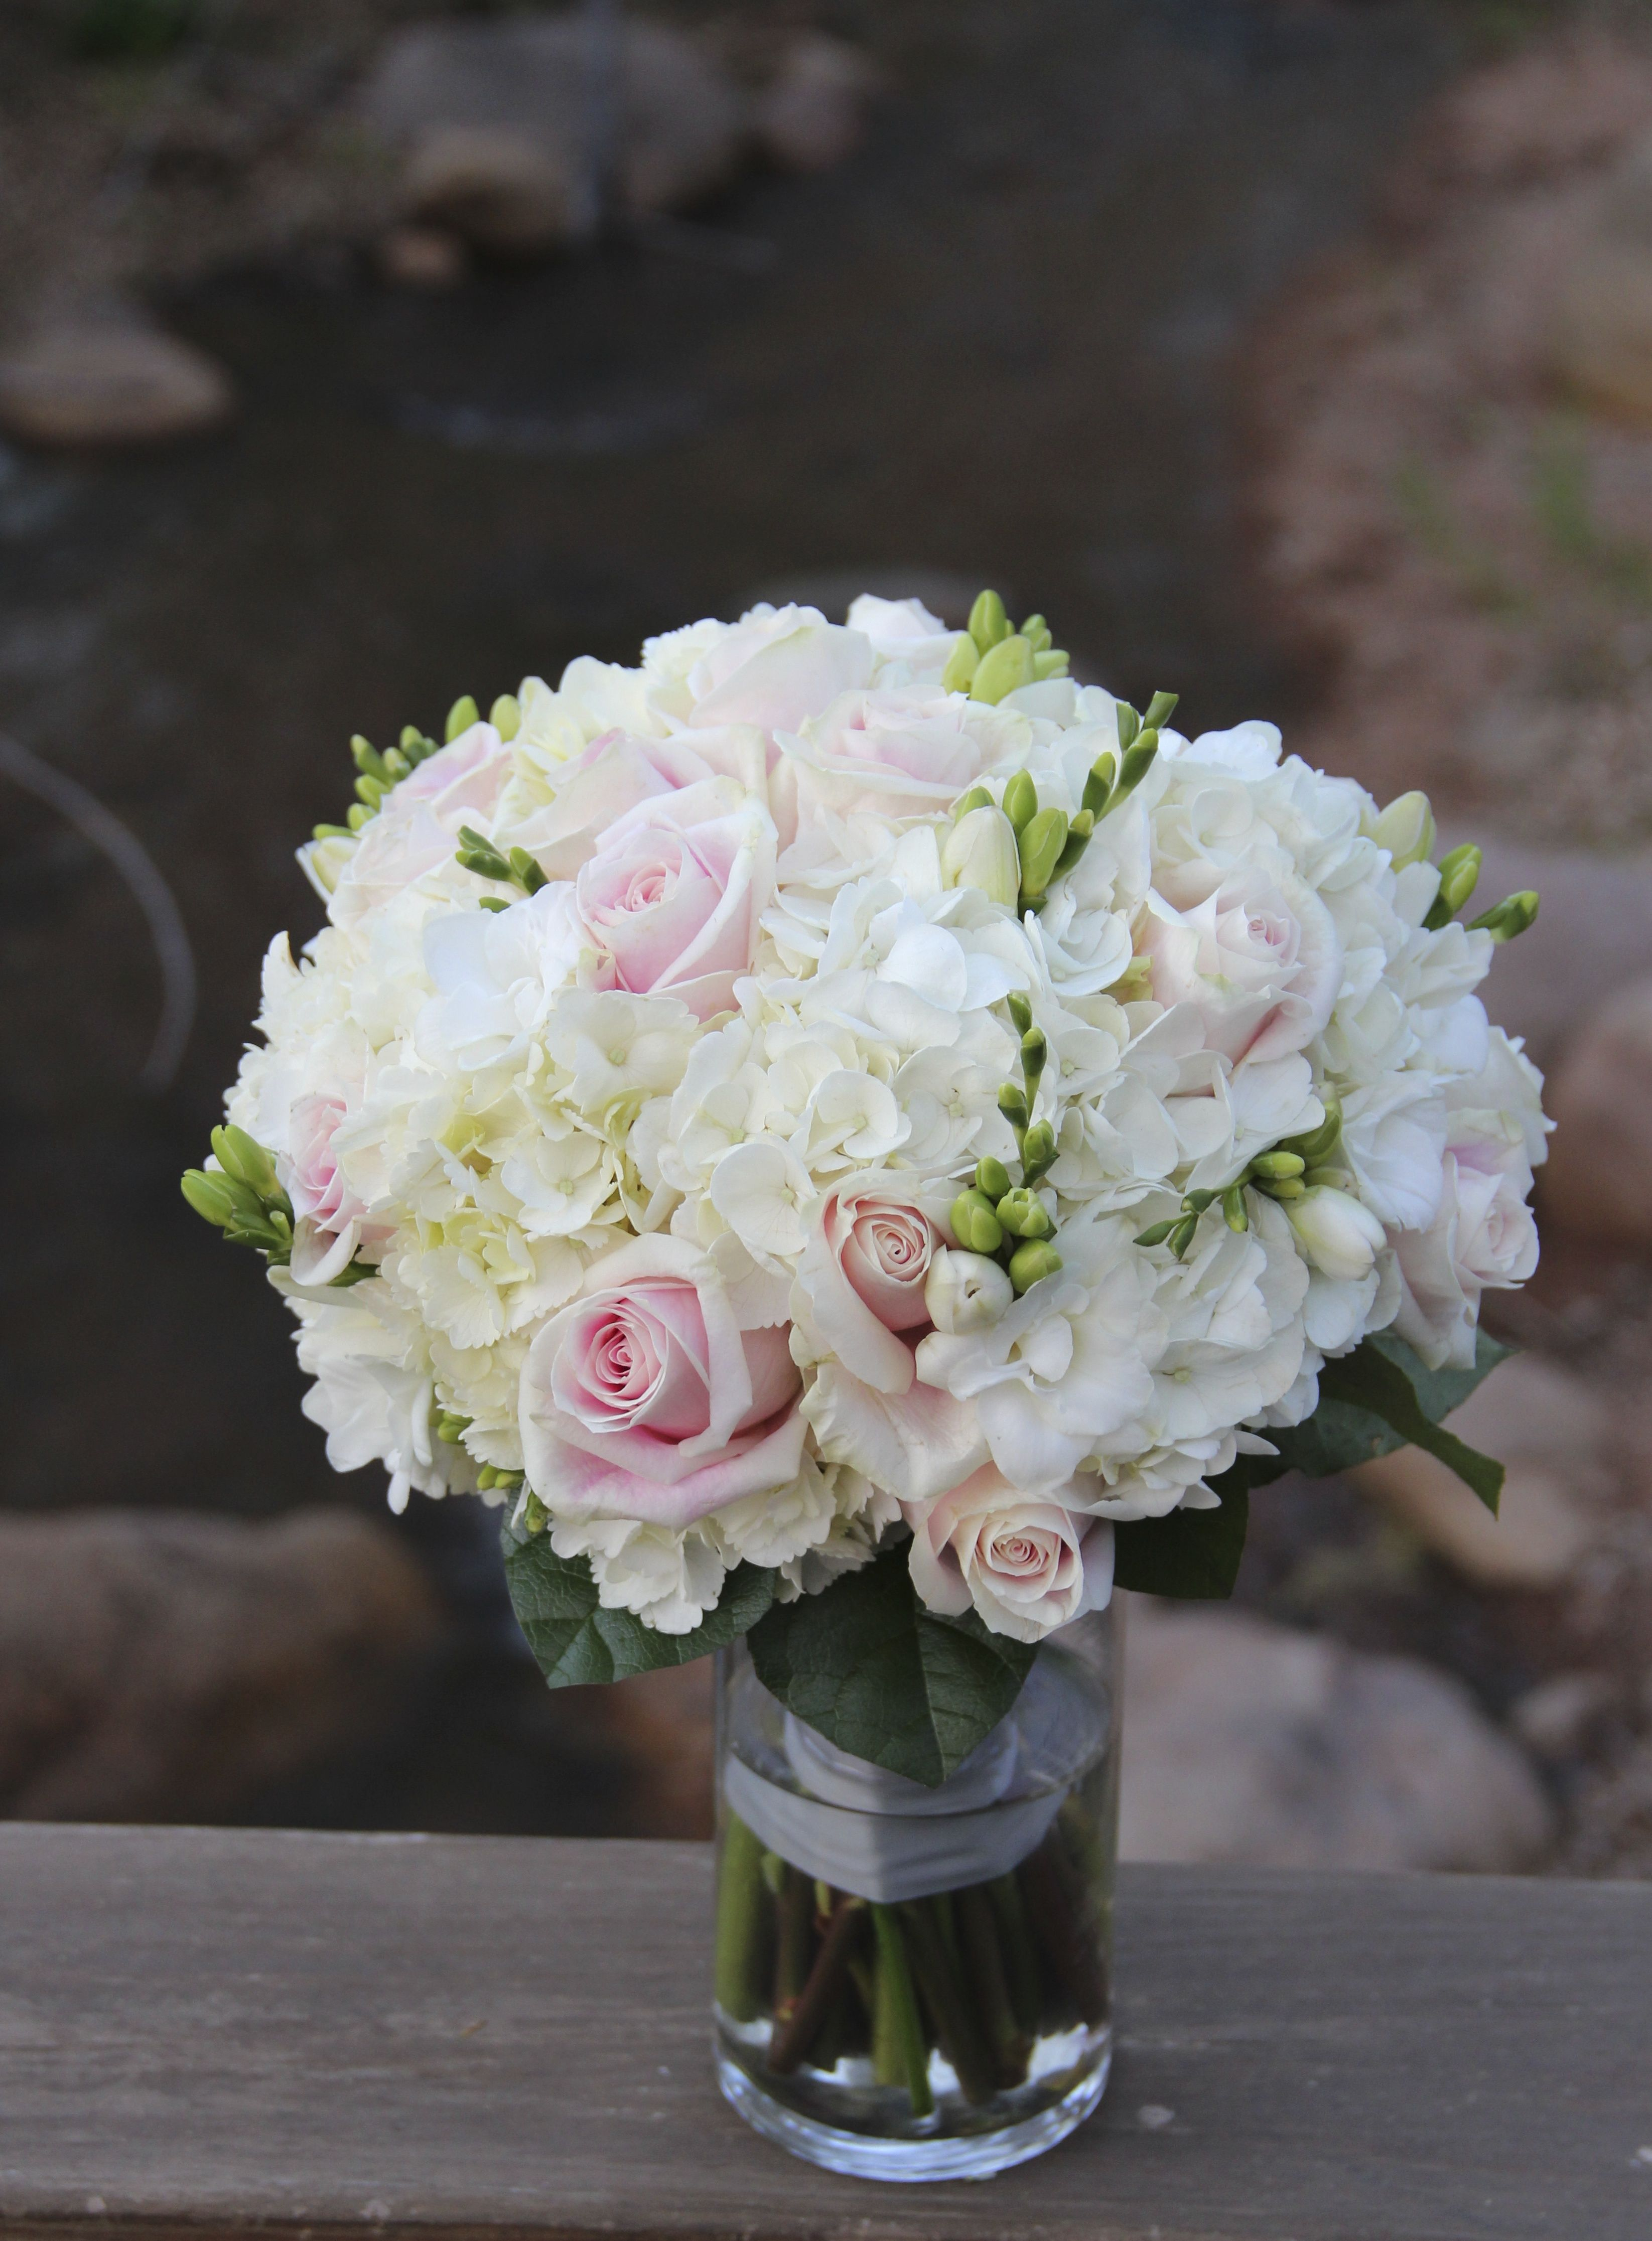 Looking for a colorado springs florist to create the flowers for looking for a colorado springs florist to create the flowers for your wedding we can mightylinksfo